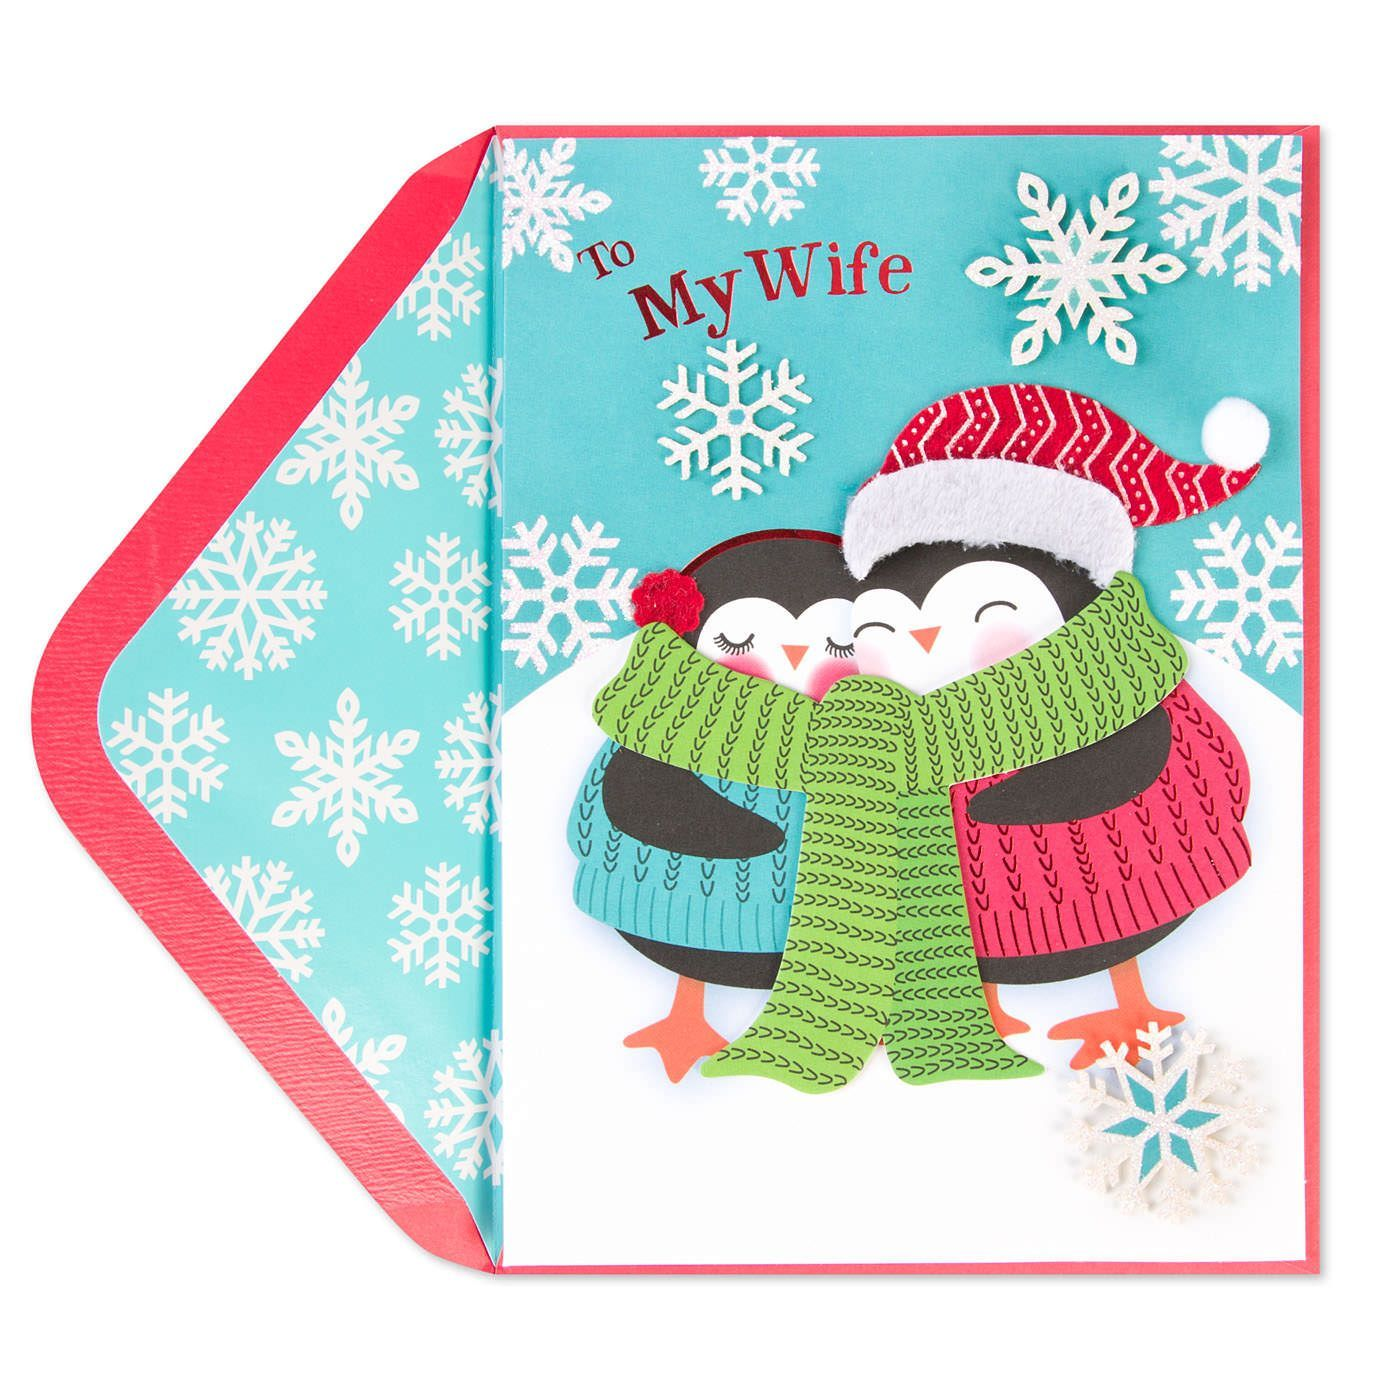 Snuggling Penguins Christmas Card (For Wife) | Penguins and Merry